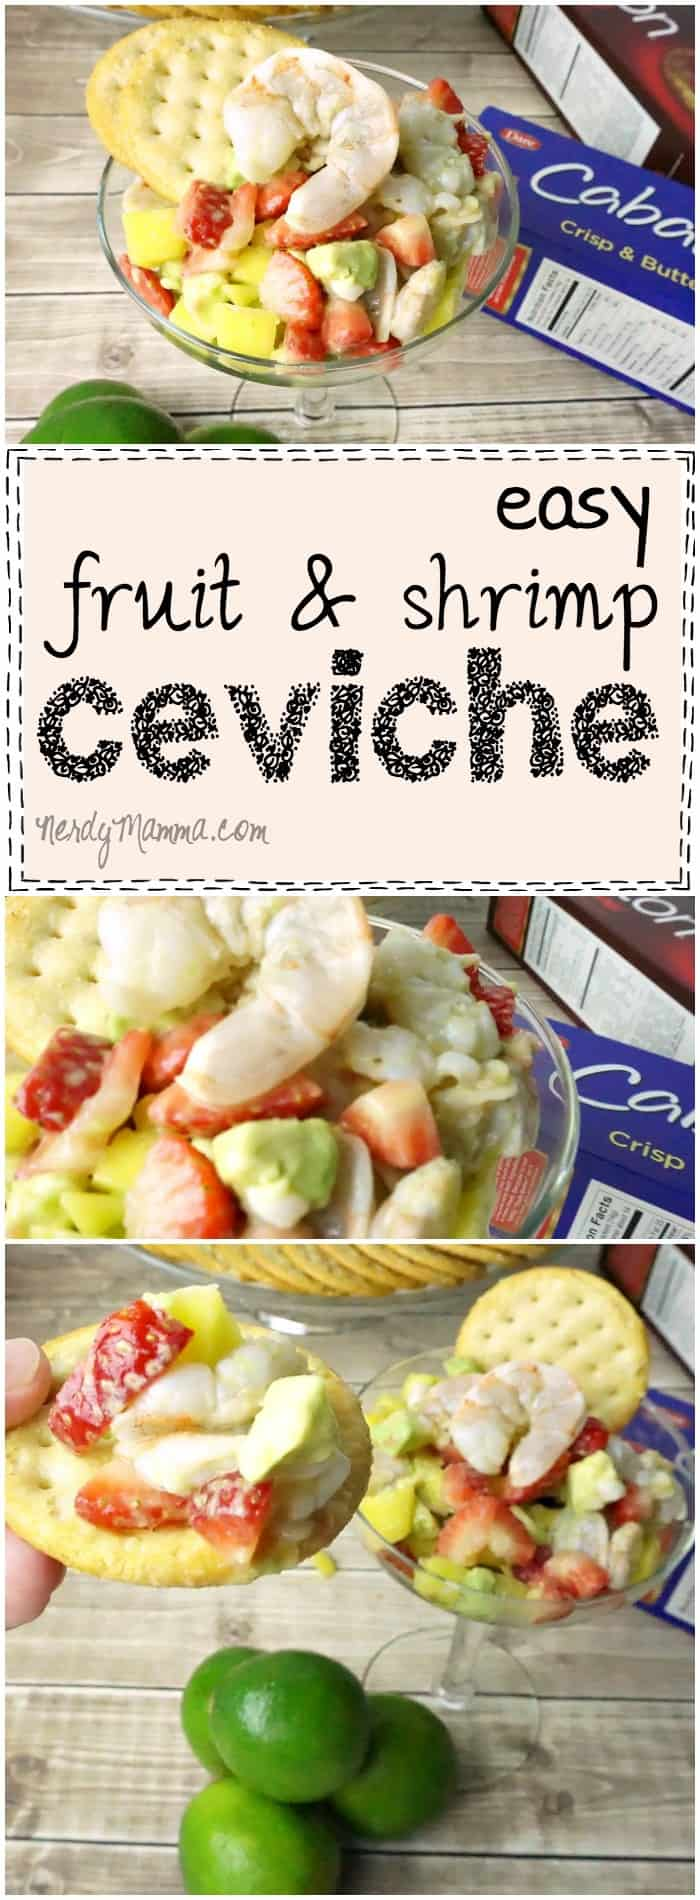 This recipe for fruit & shrimp ceviche is so EASY! I love that you don't even cook the shrimp...that's so cool...